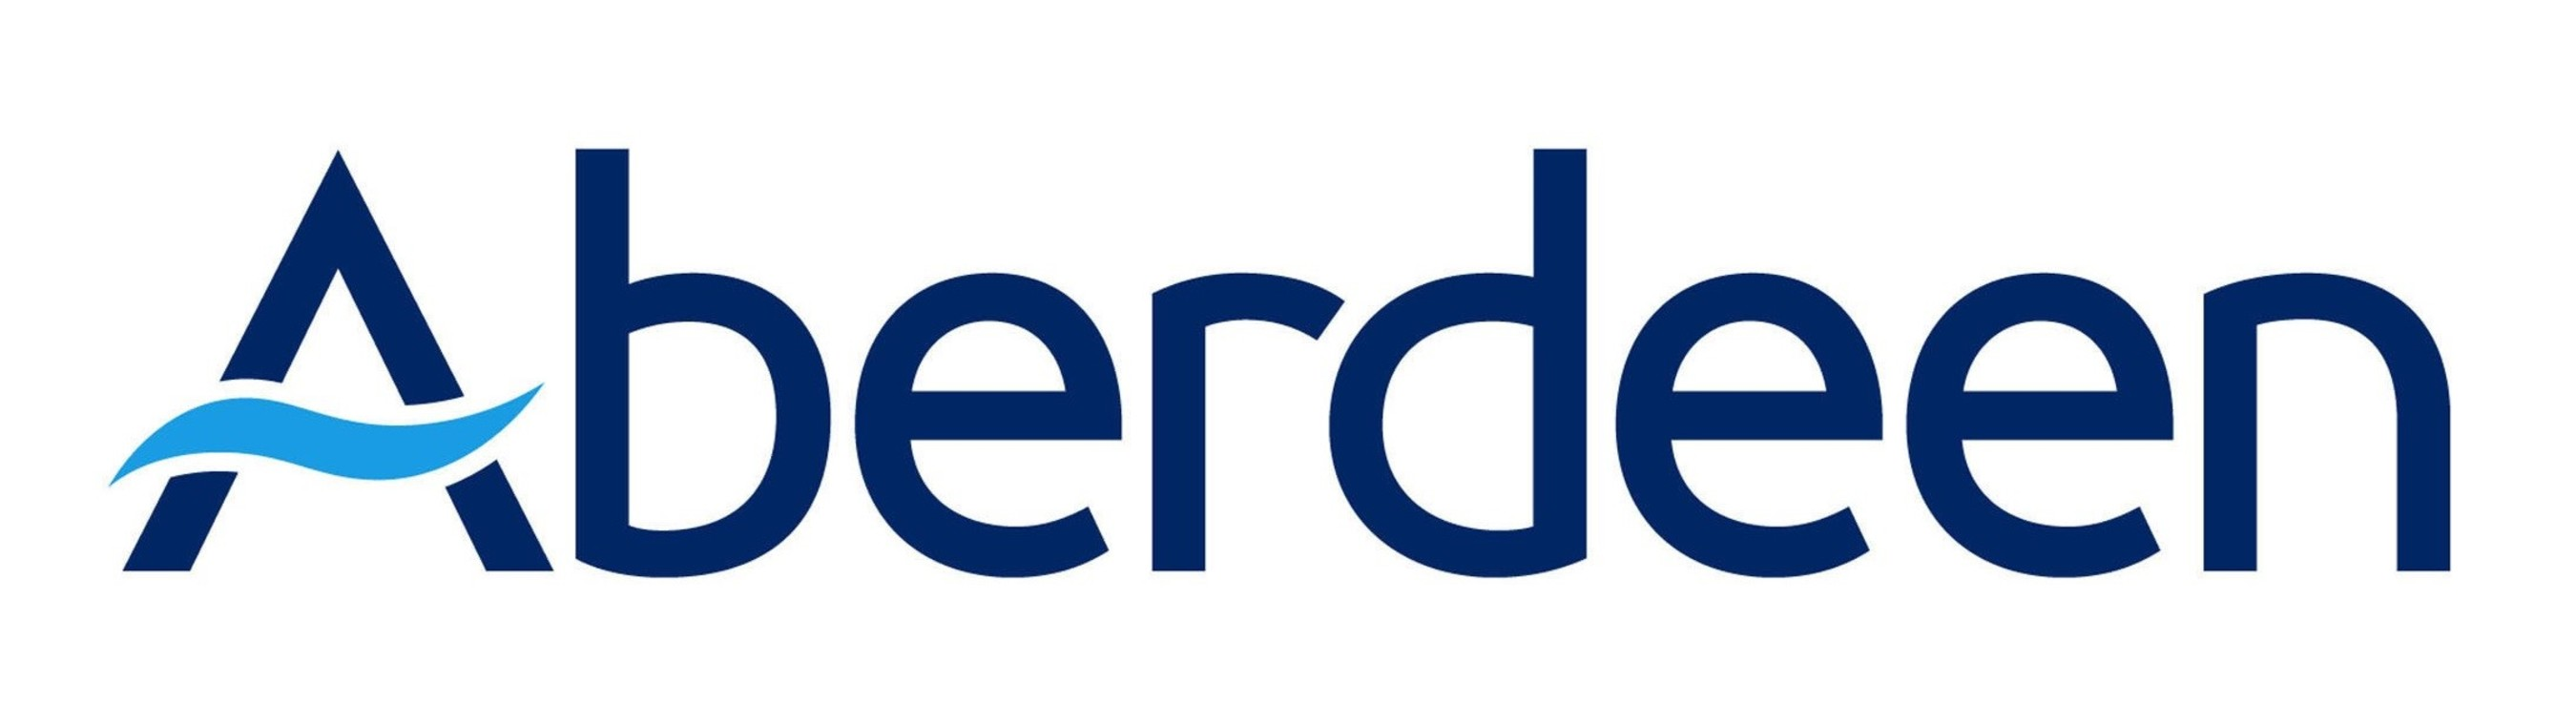 Aberdeen Asset Management Inc. At Aberdeen, asset management is our business. We only manage assets for clients, allowing us to focus solely on their needs and deliver independent, objective investment advice. We know global markets from the local level upwards, drawing on more than 1,900 staff, across 32 offices in 23 countries. Investment teams are based in the markets or regions where they invest, delivering local perspective in a global investment environment.